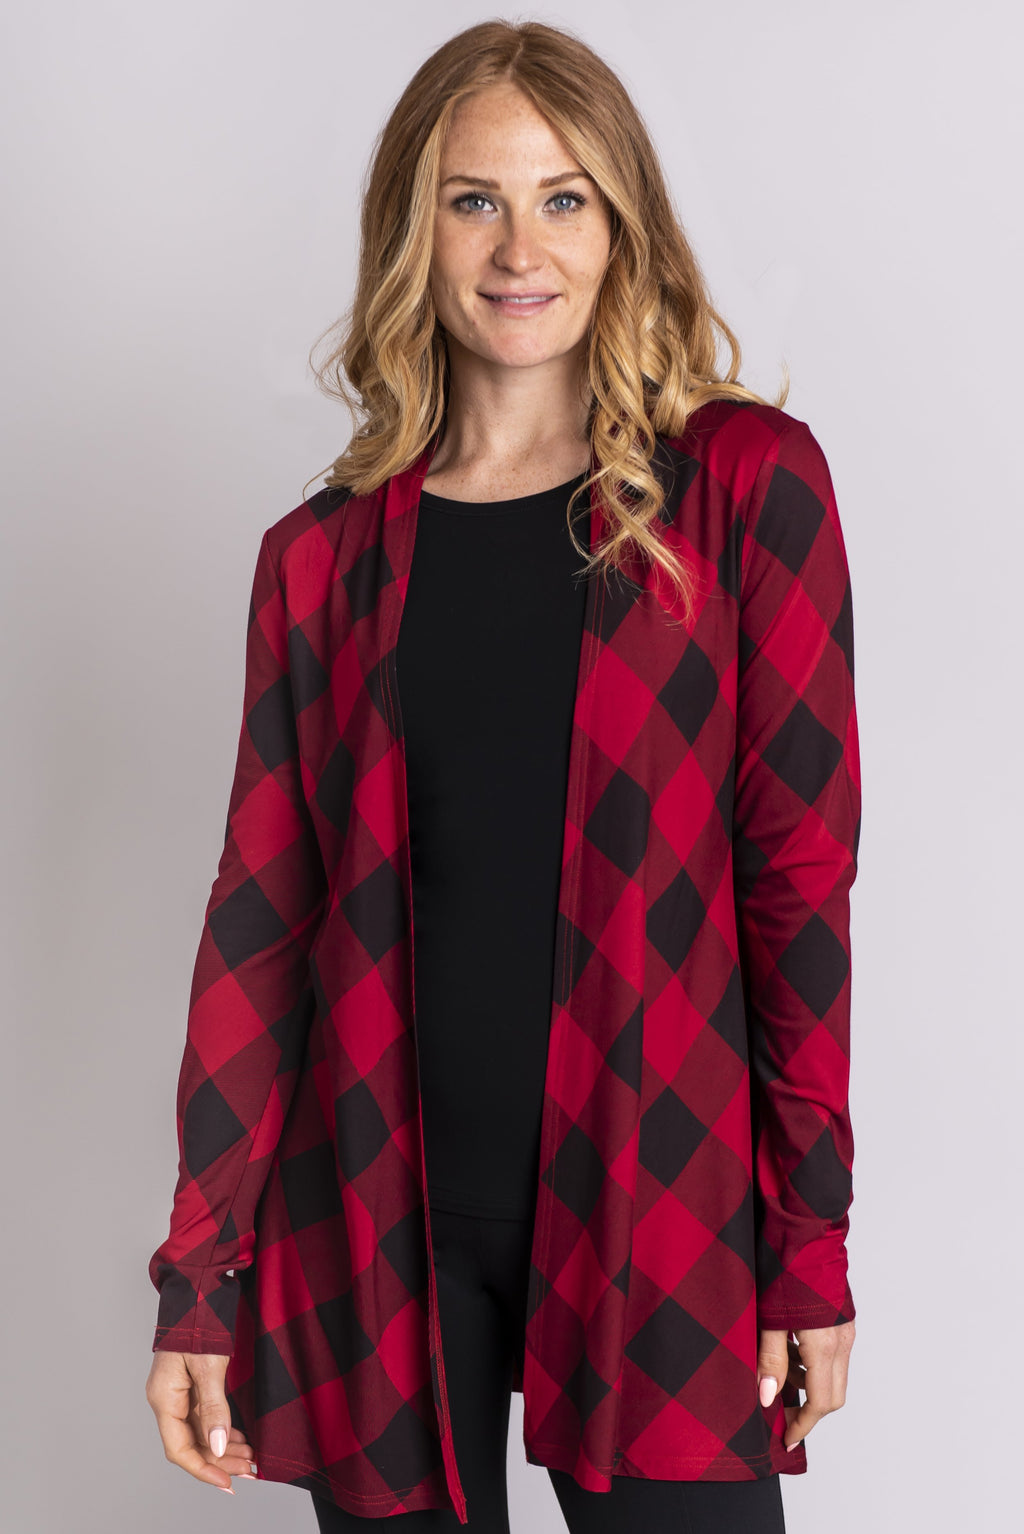 Chopra Jacket, Red Plaid, Bamboo - Blue Sky Clothing Co